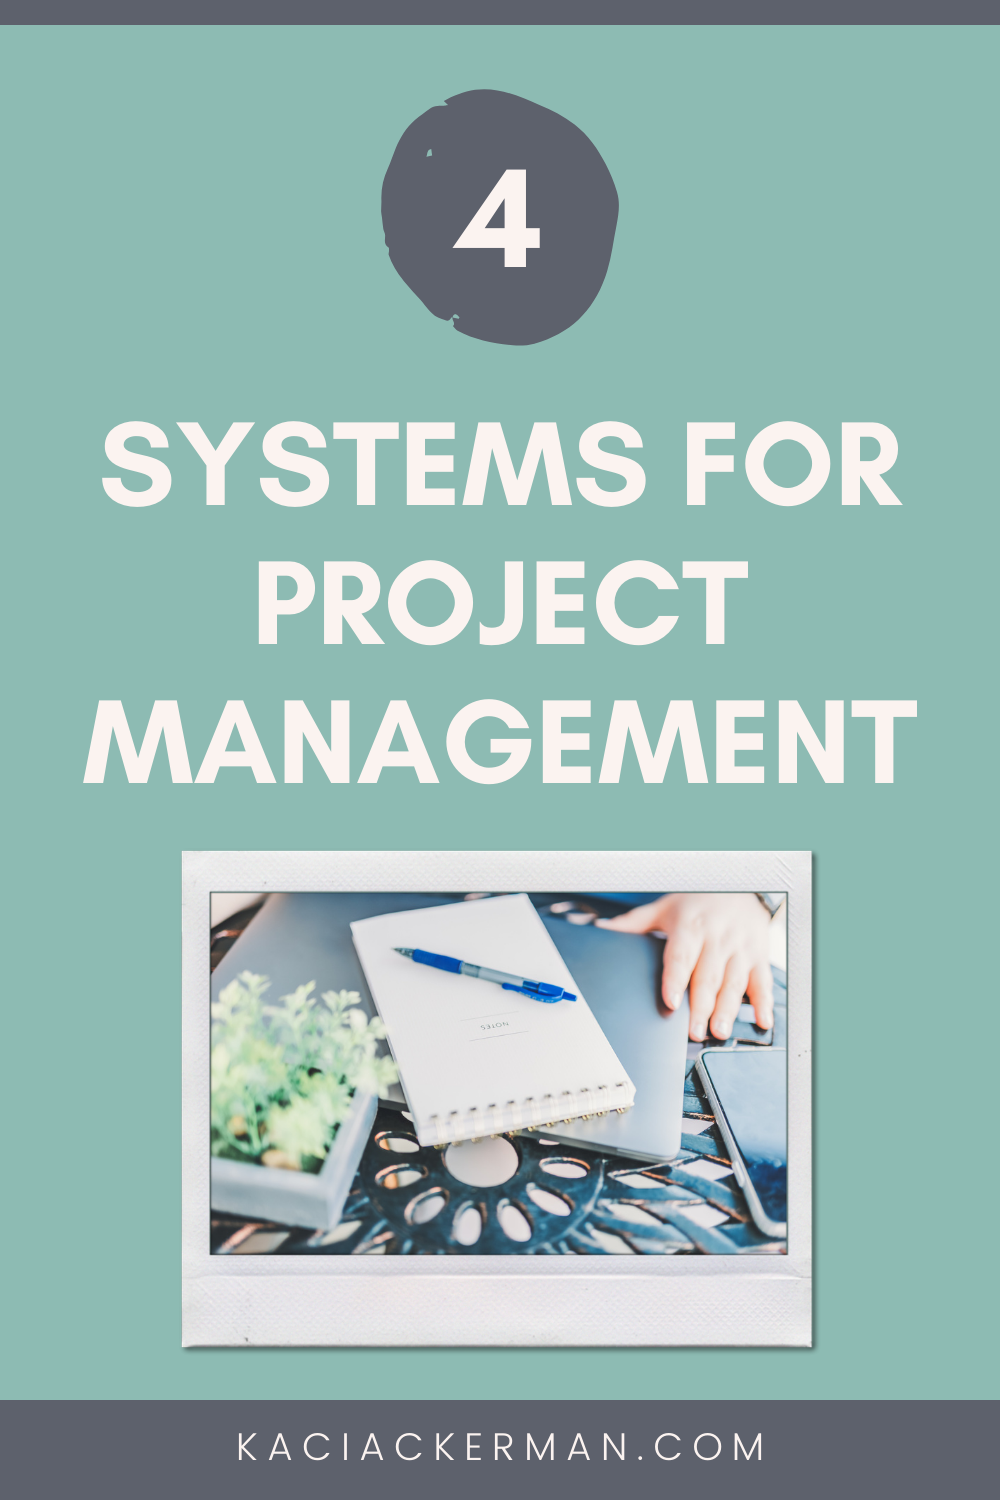 Systems for Project Management